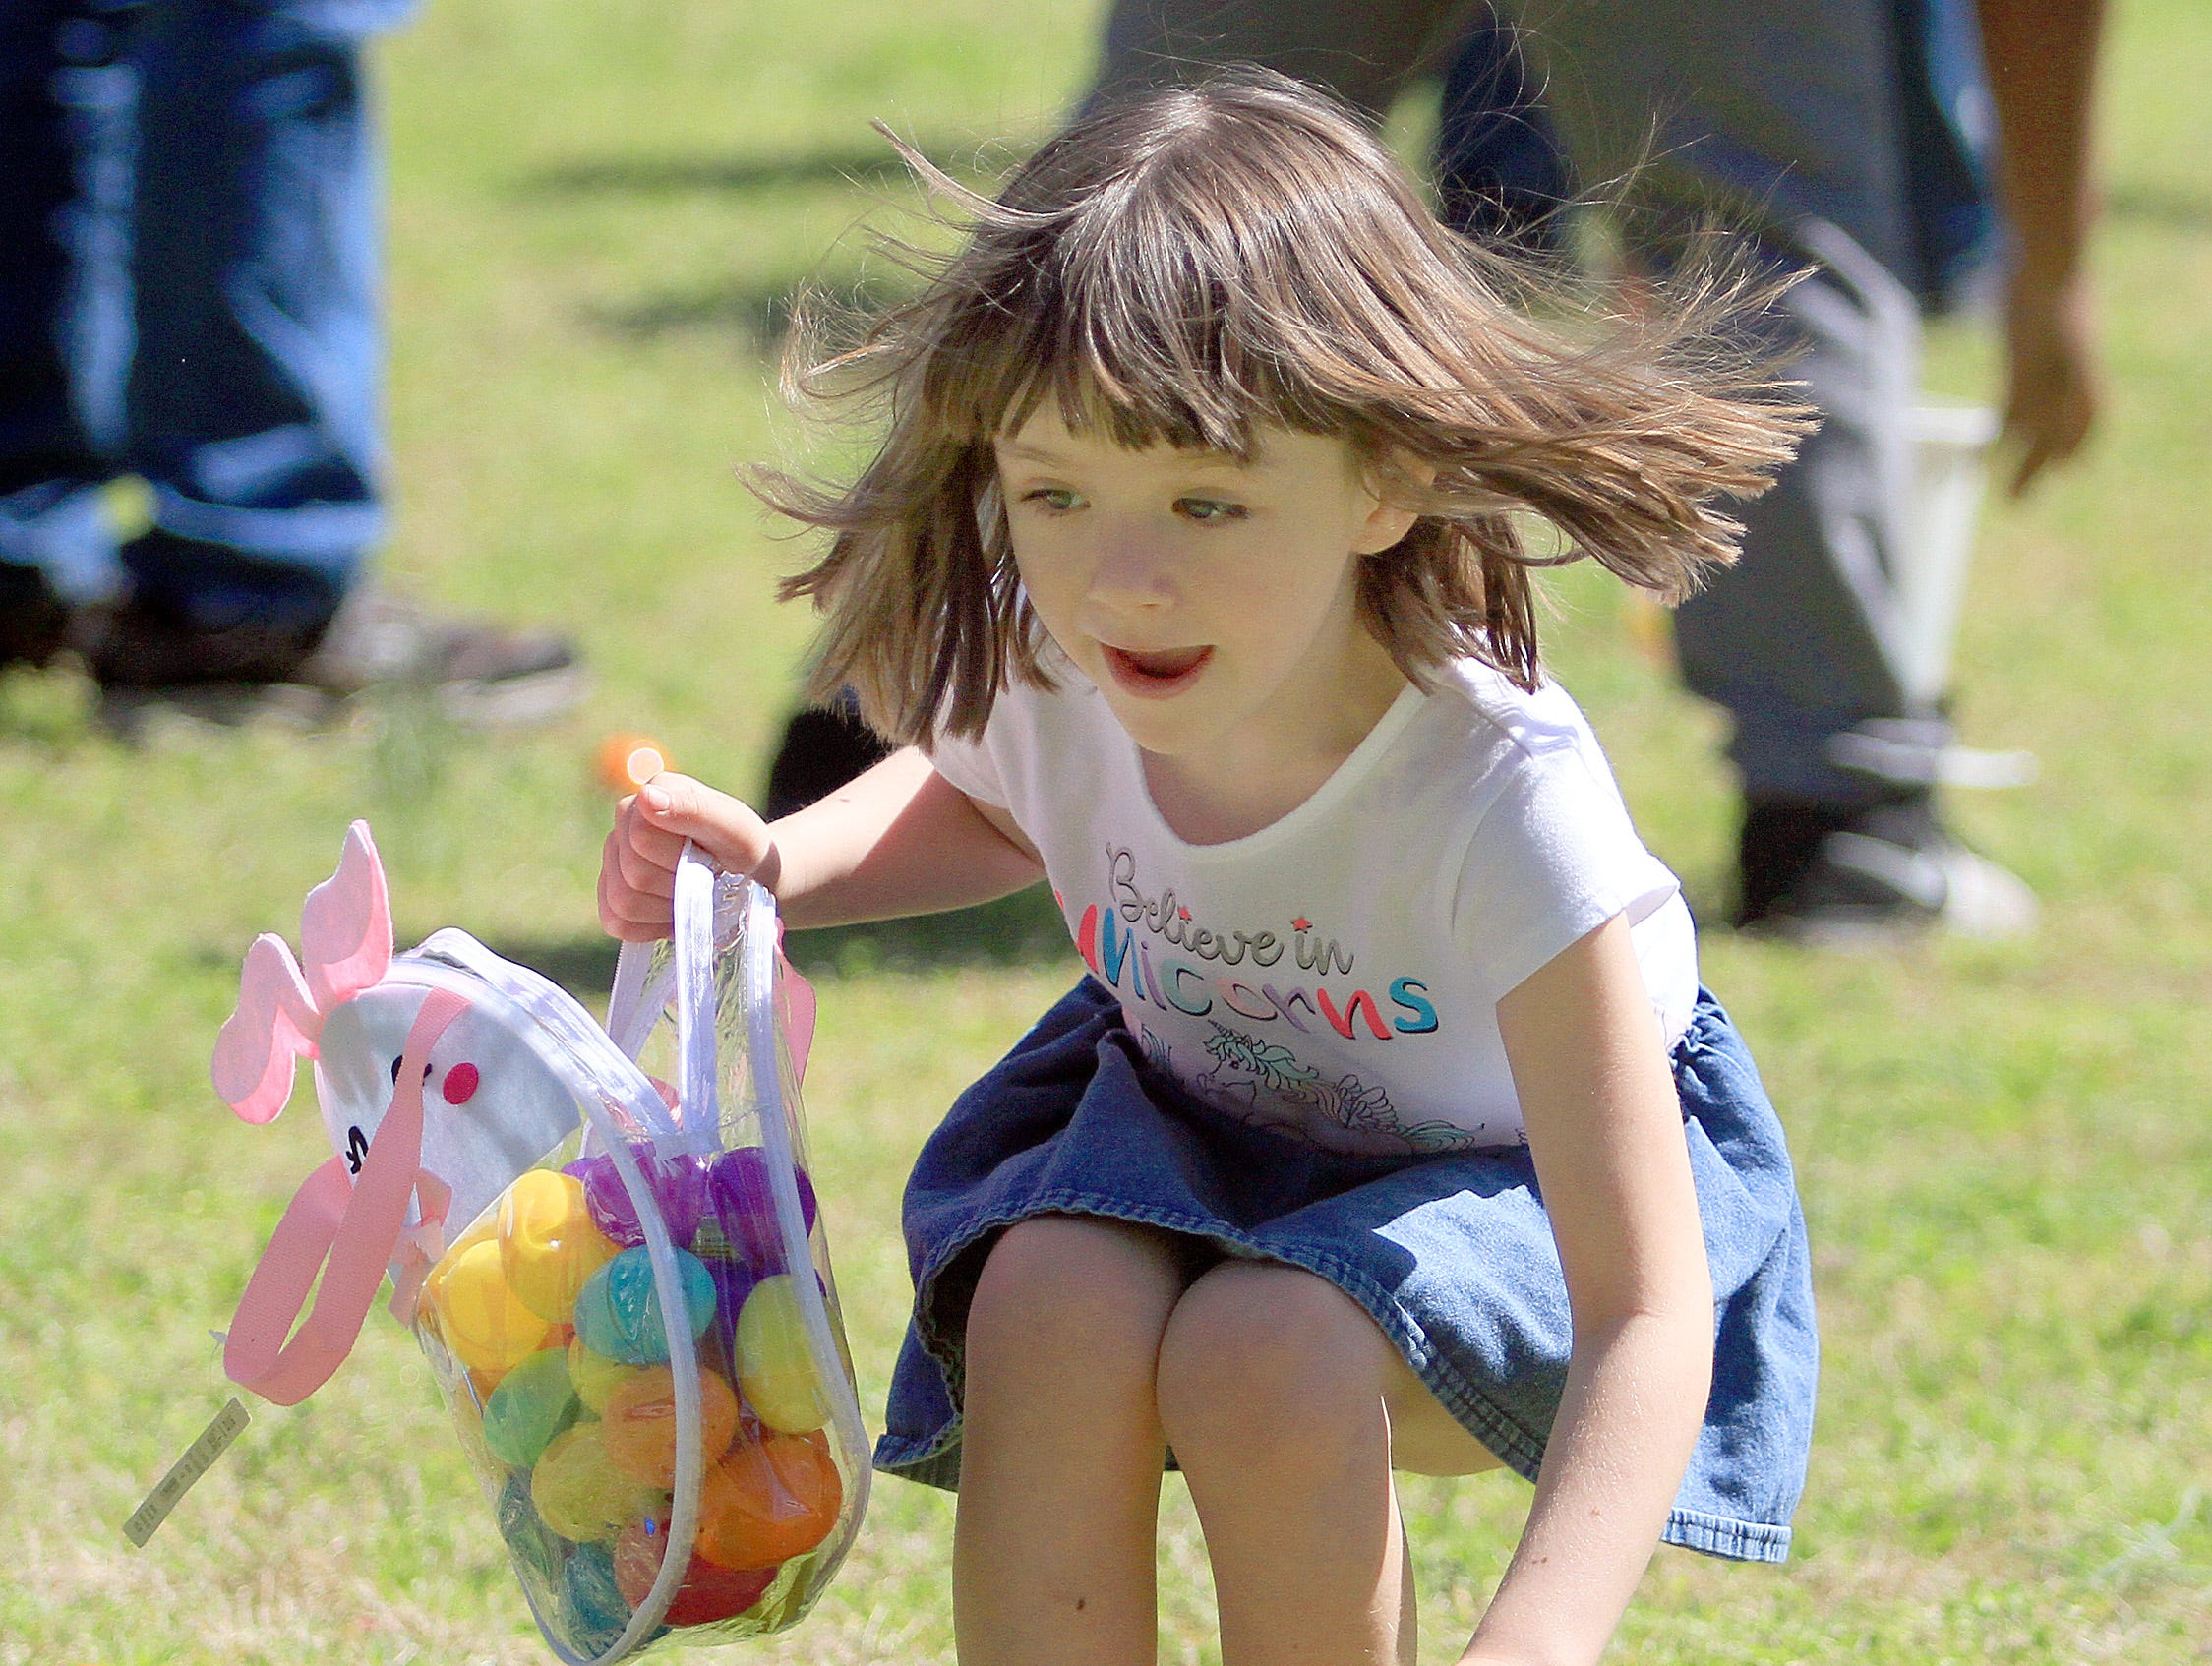 A young girl scrambles for Easter eggs at Rock Castle in Hendersonville, TN on Saturday, April 6, 2019.